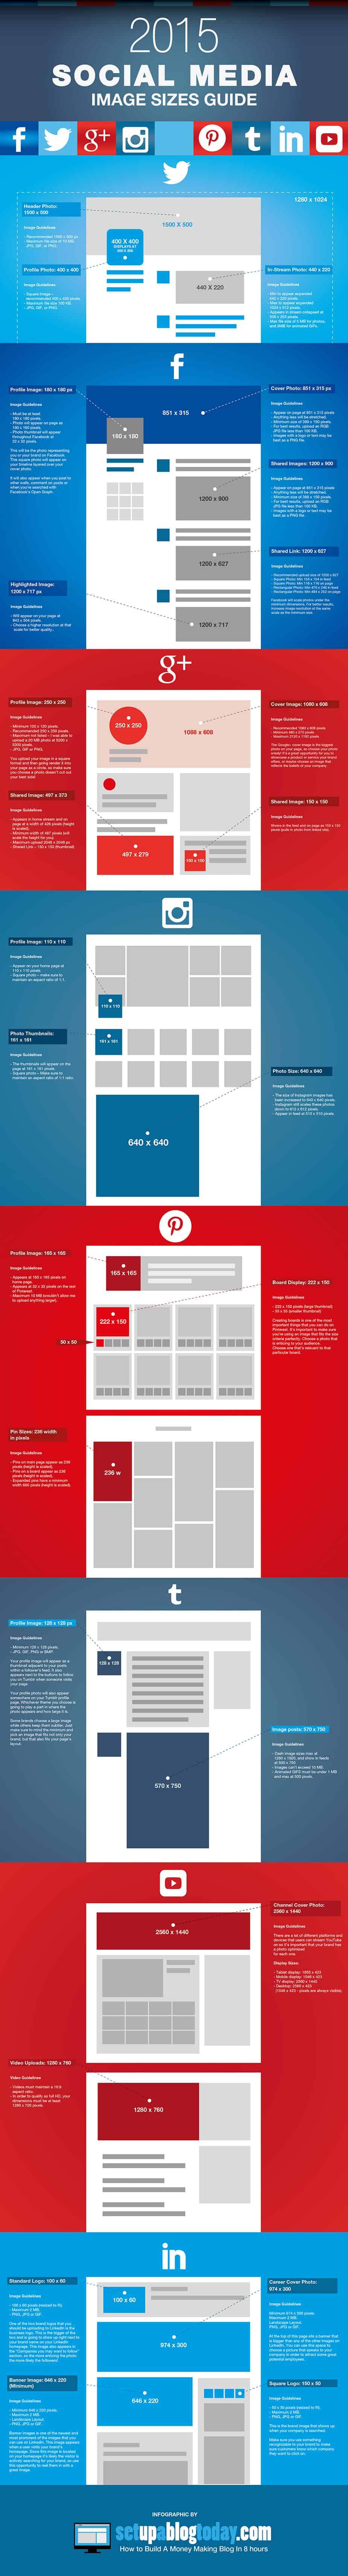 2015 social media image sizes infographic - SME Research